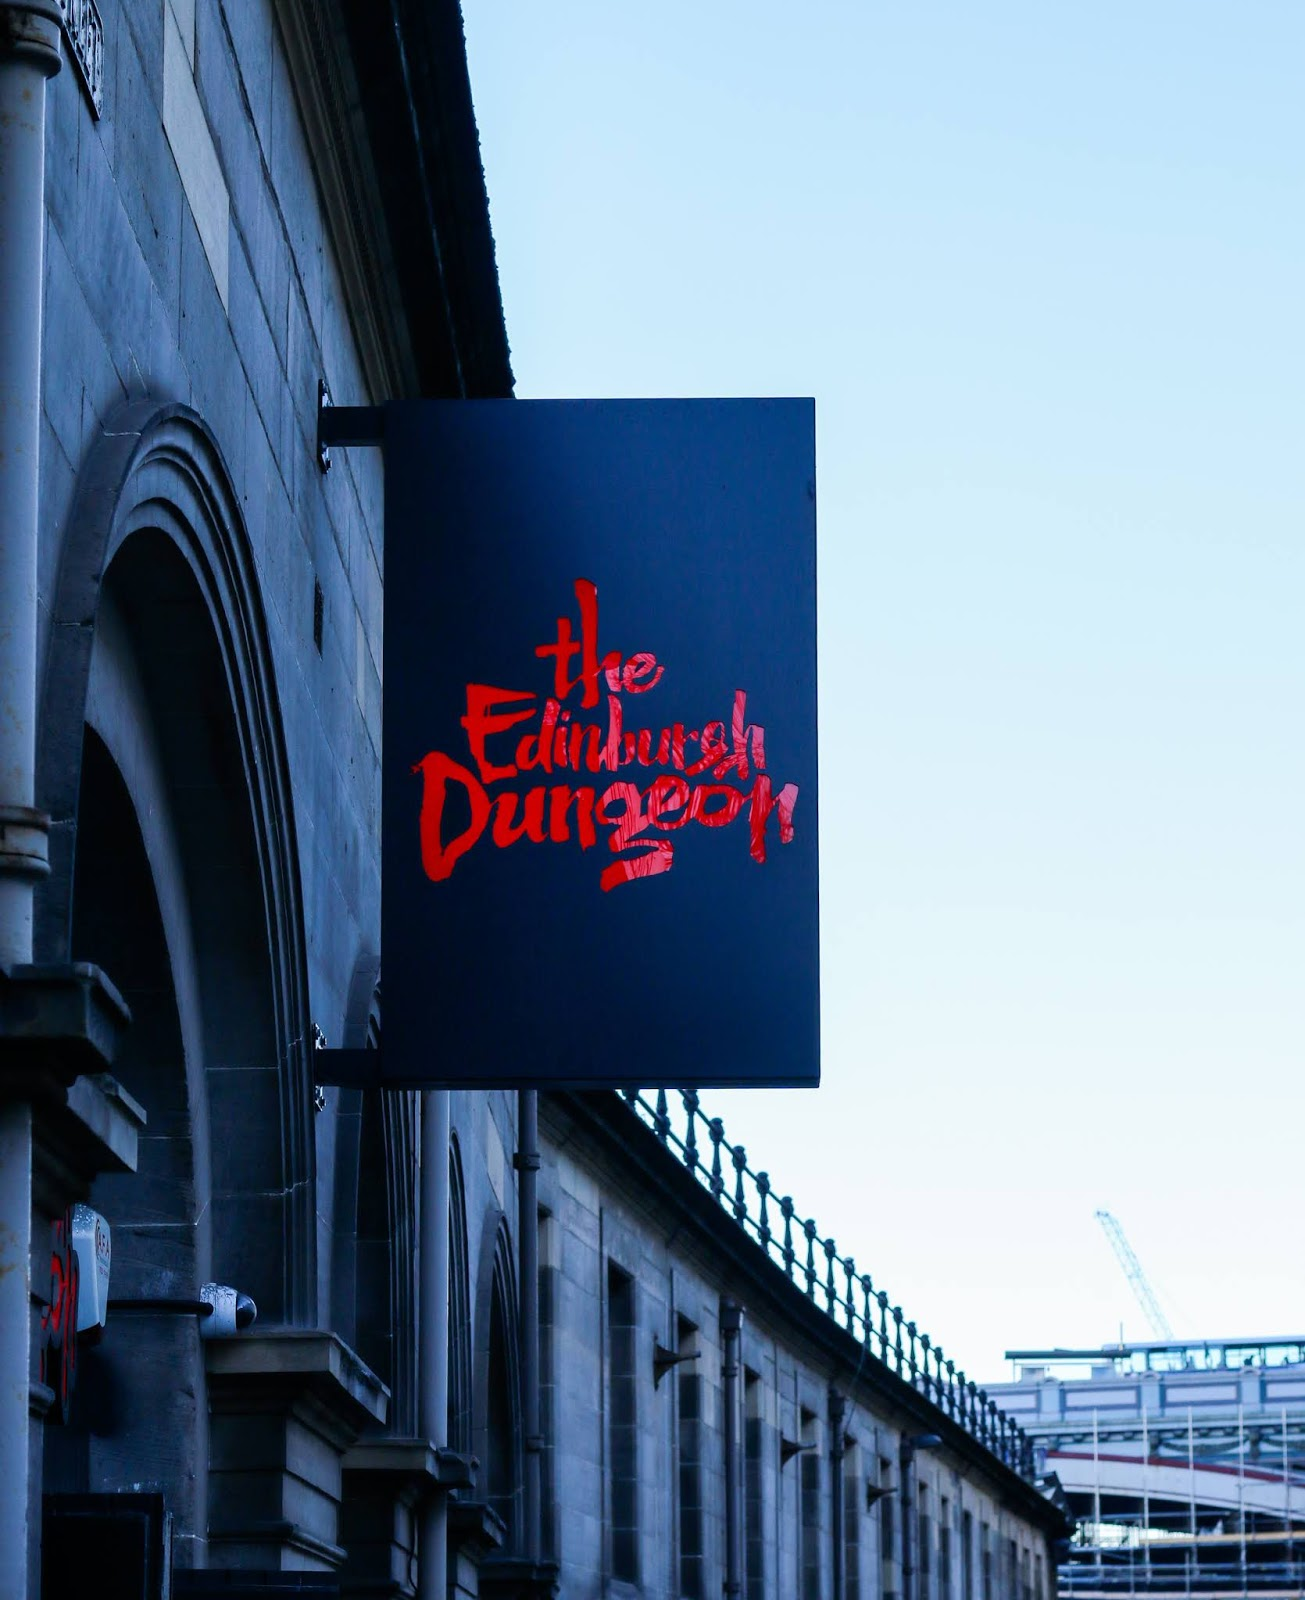 a close up of the Edinburgh dungeons sigh